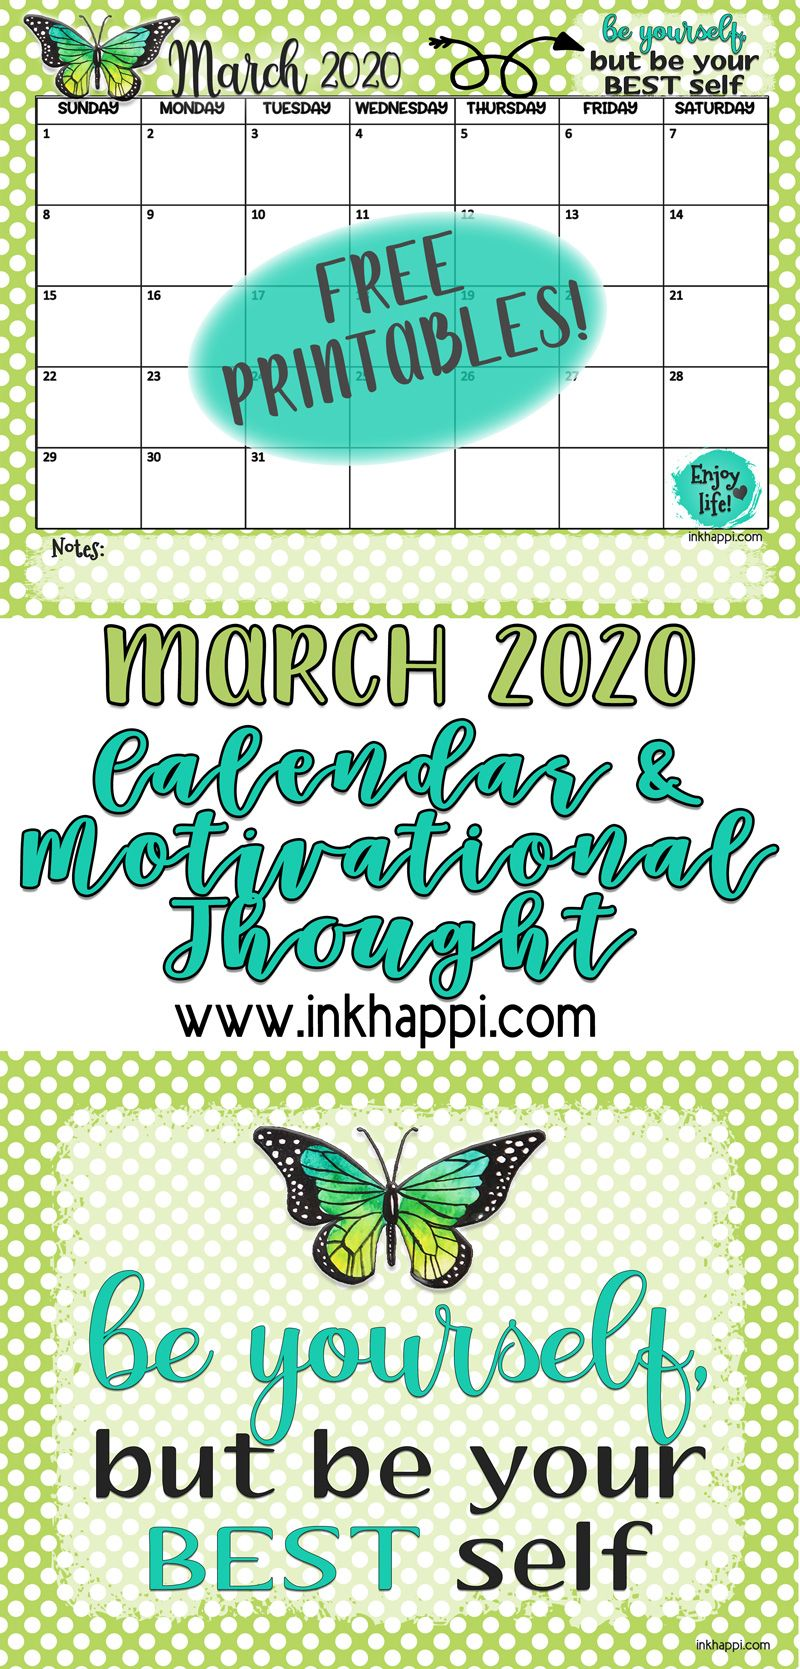 March 2020 Calendar And 30 Ideas To Be Your Best Self In 2020